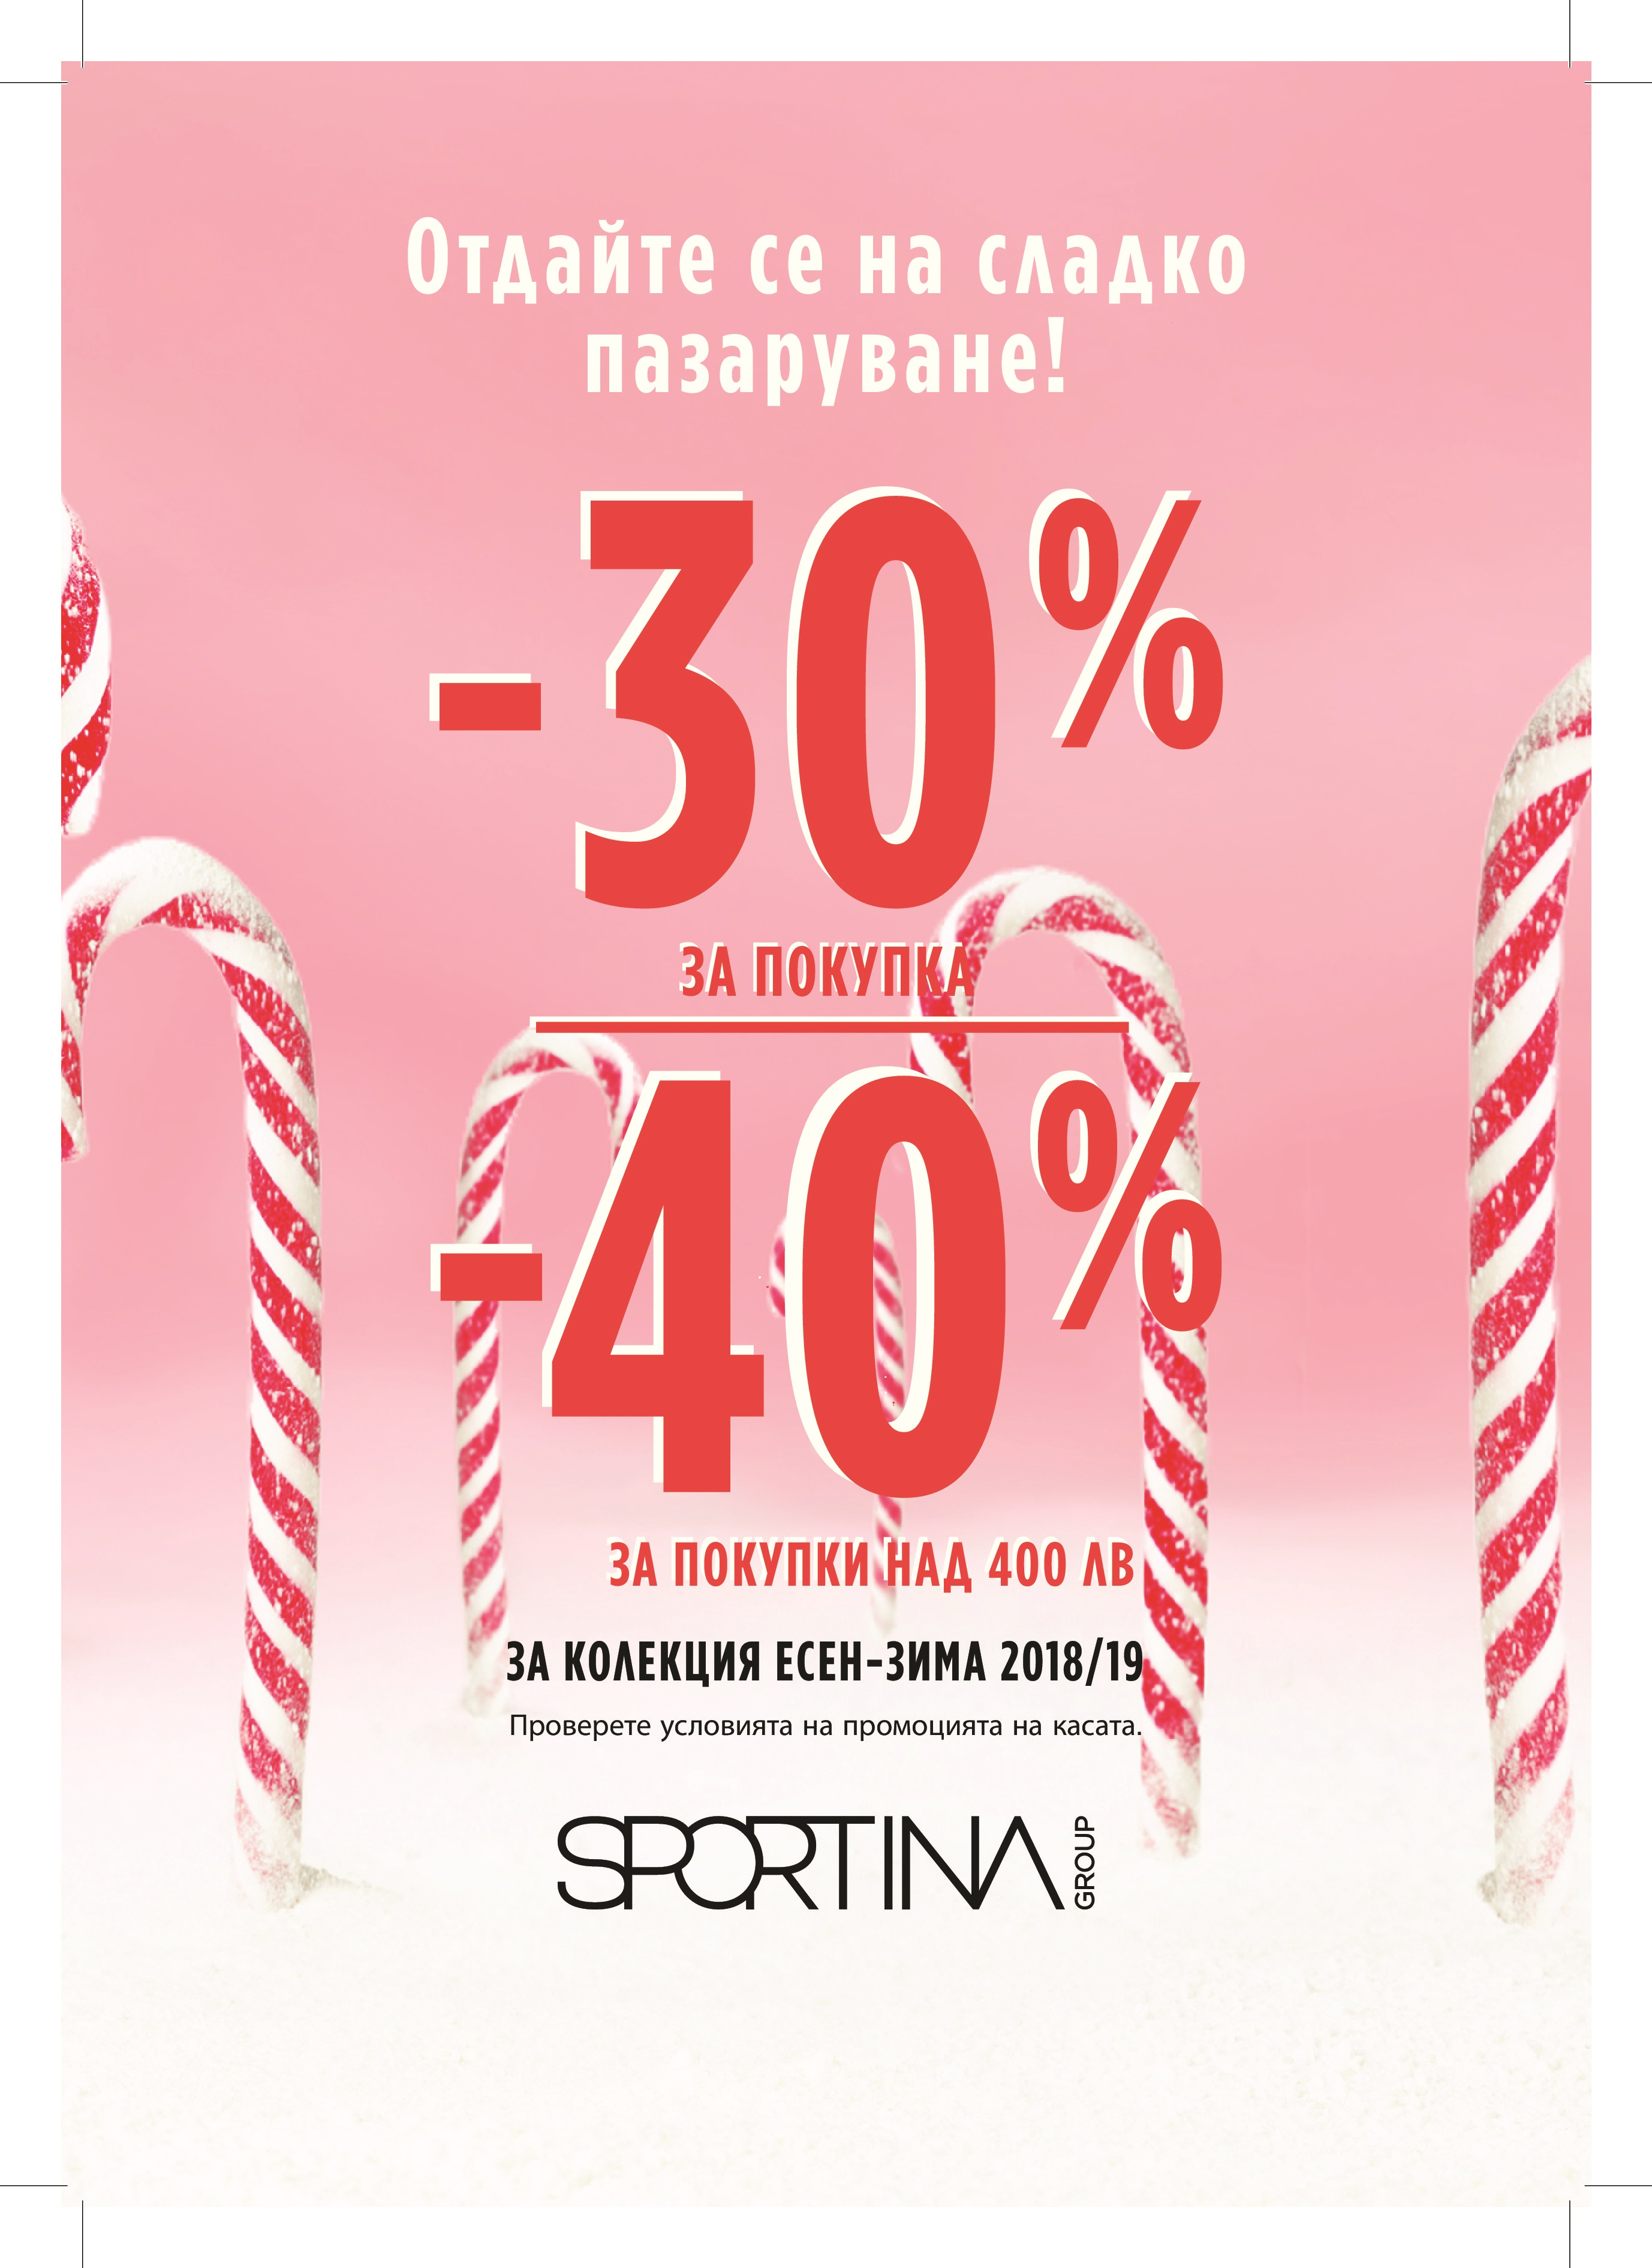 Exclusive offer from SPORTINA!